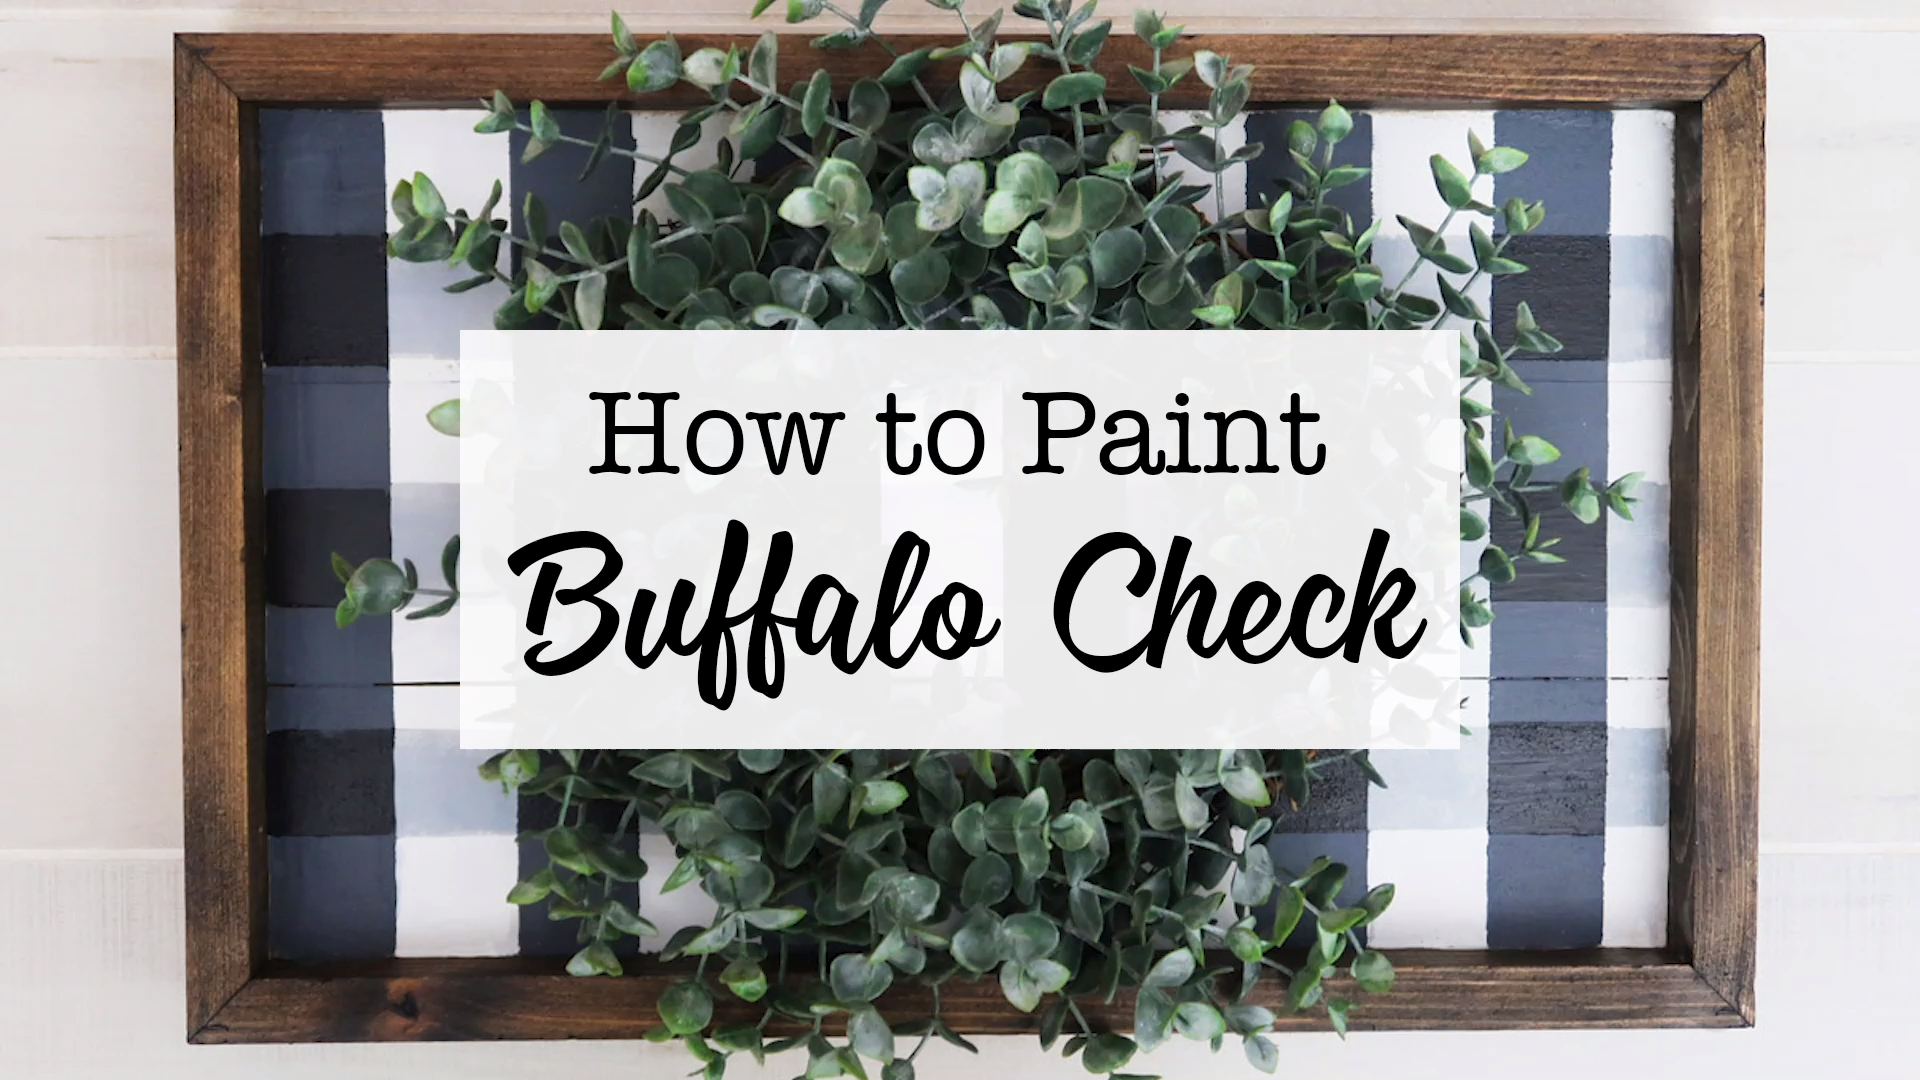 How to paint a buffalo check plaid sign #FallCrafts #BuffaloCheck BuffaloCheckPlaid